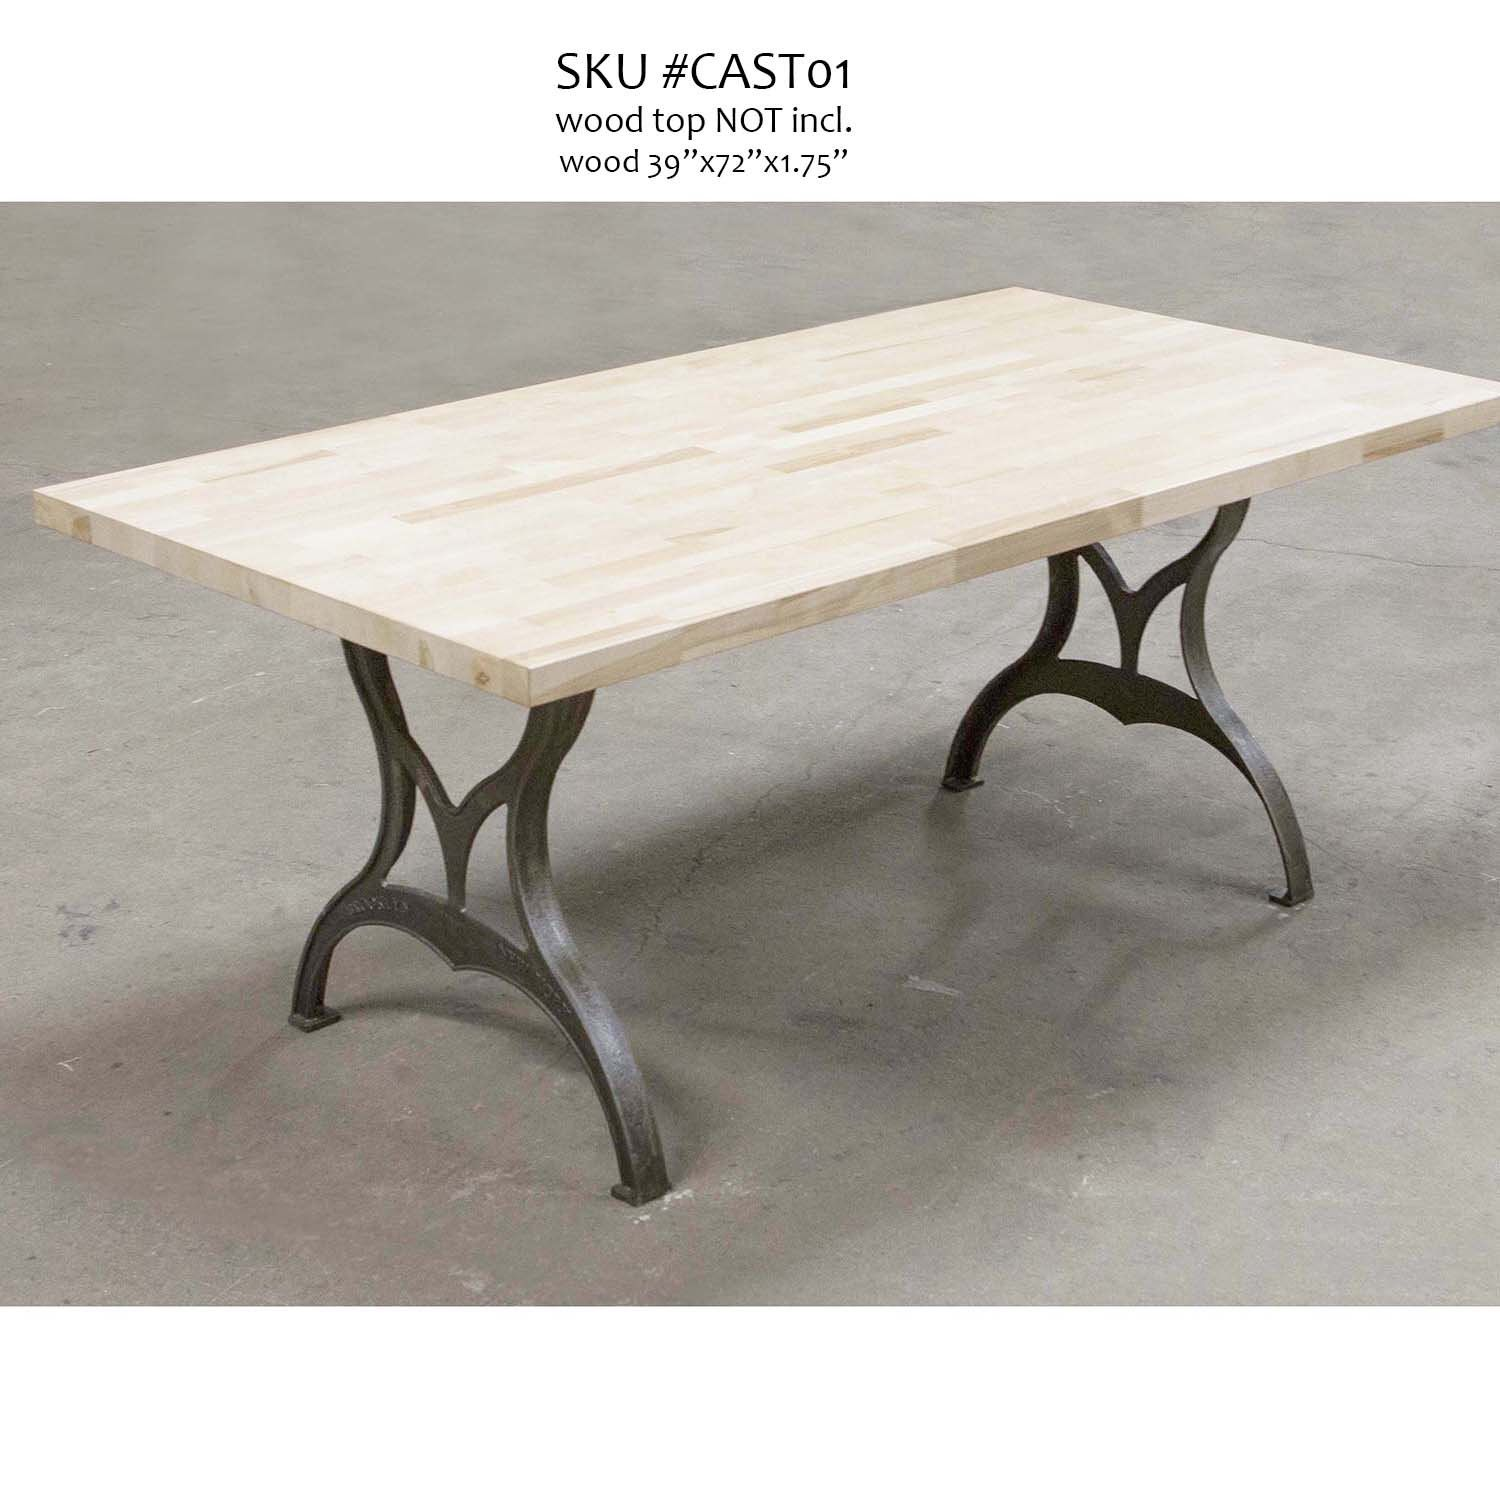 CAST01 Cast Iron Dining Table Legs, 2 pack Dining table